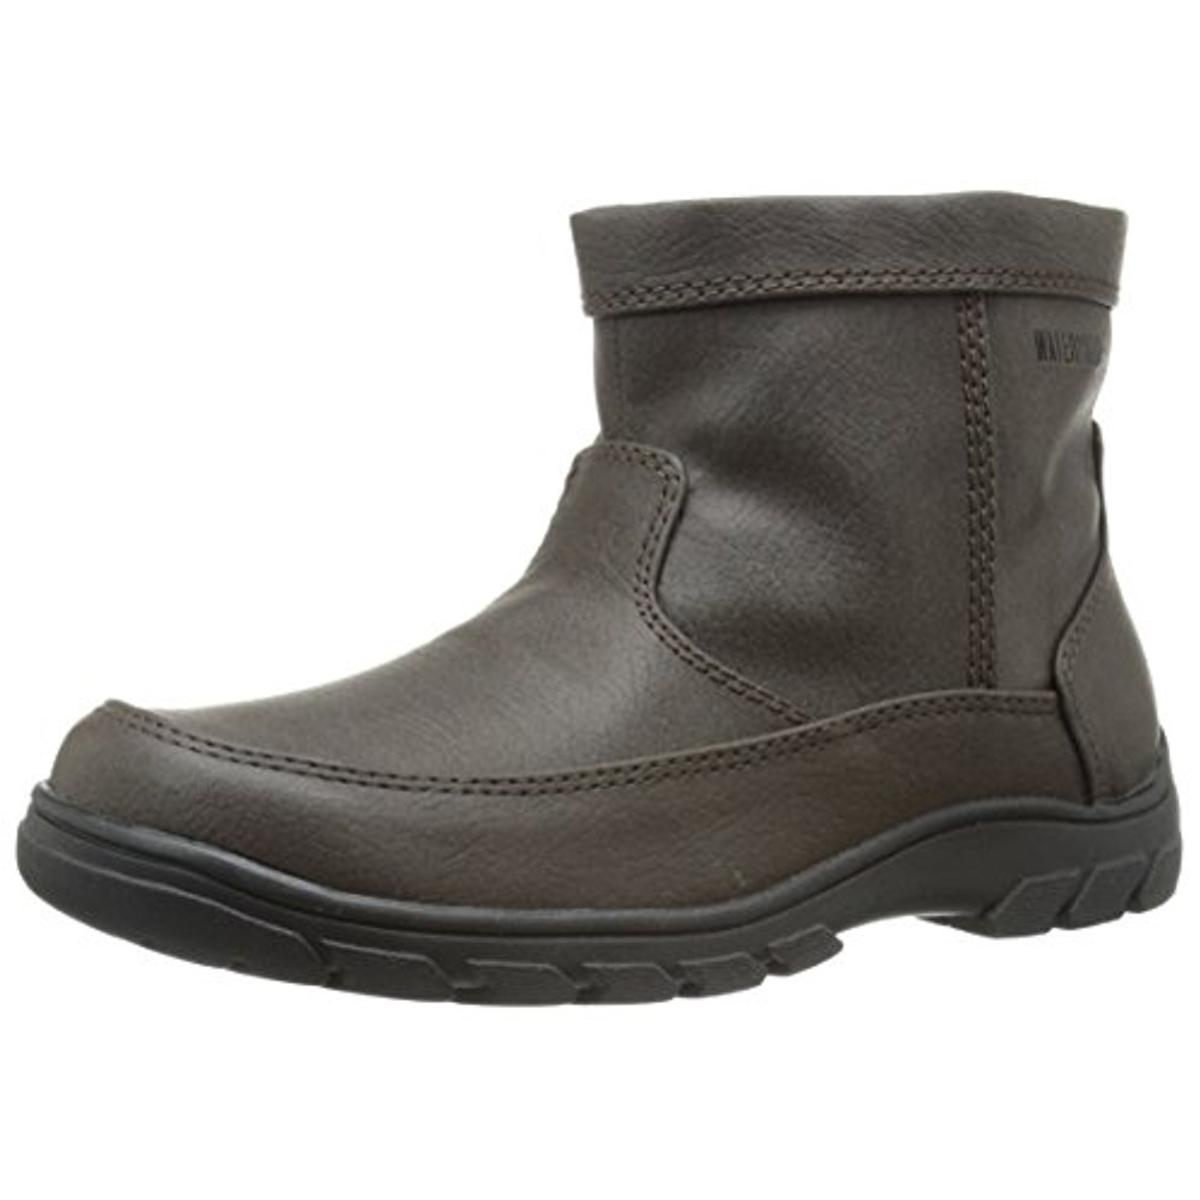 Florsheim Boys Trektion Faux Leather Waterproof Winter Boots by Florsheim